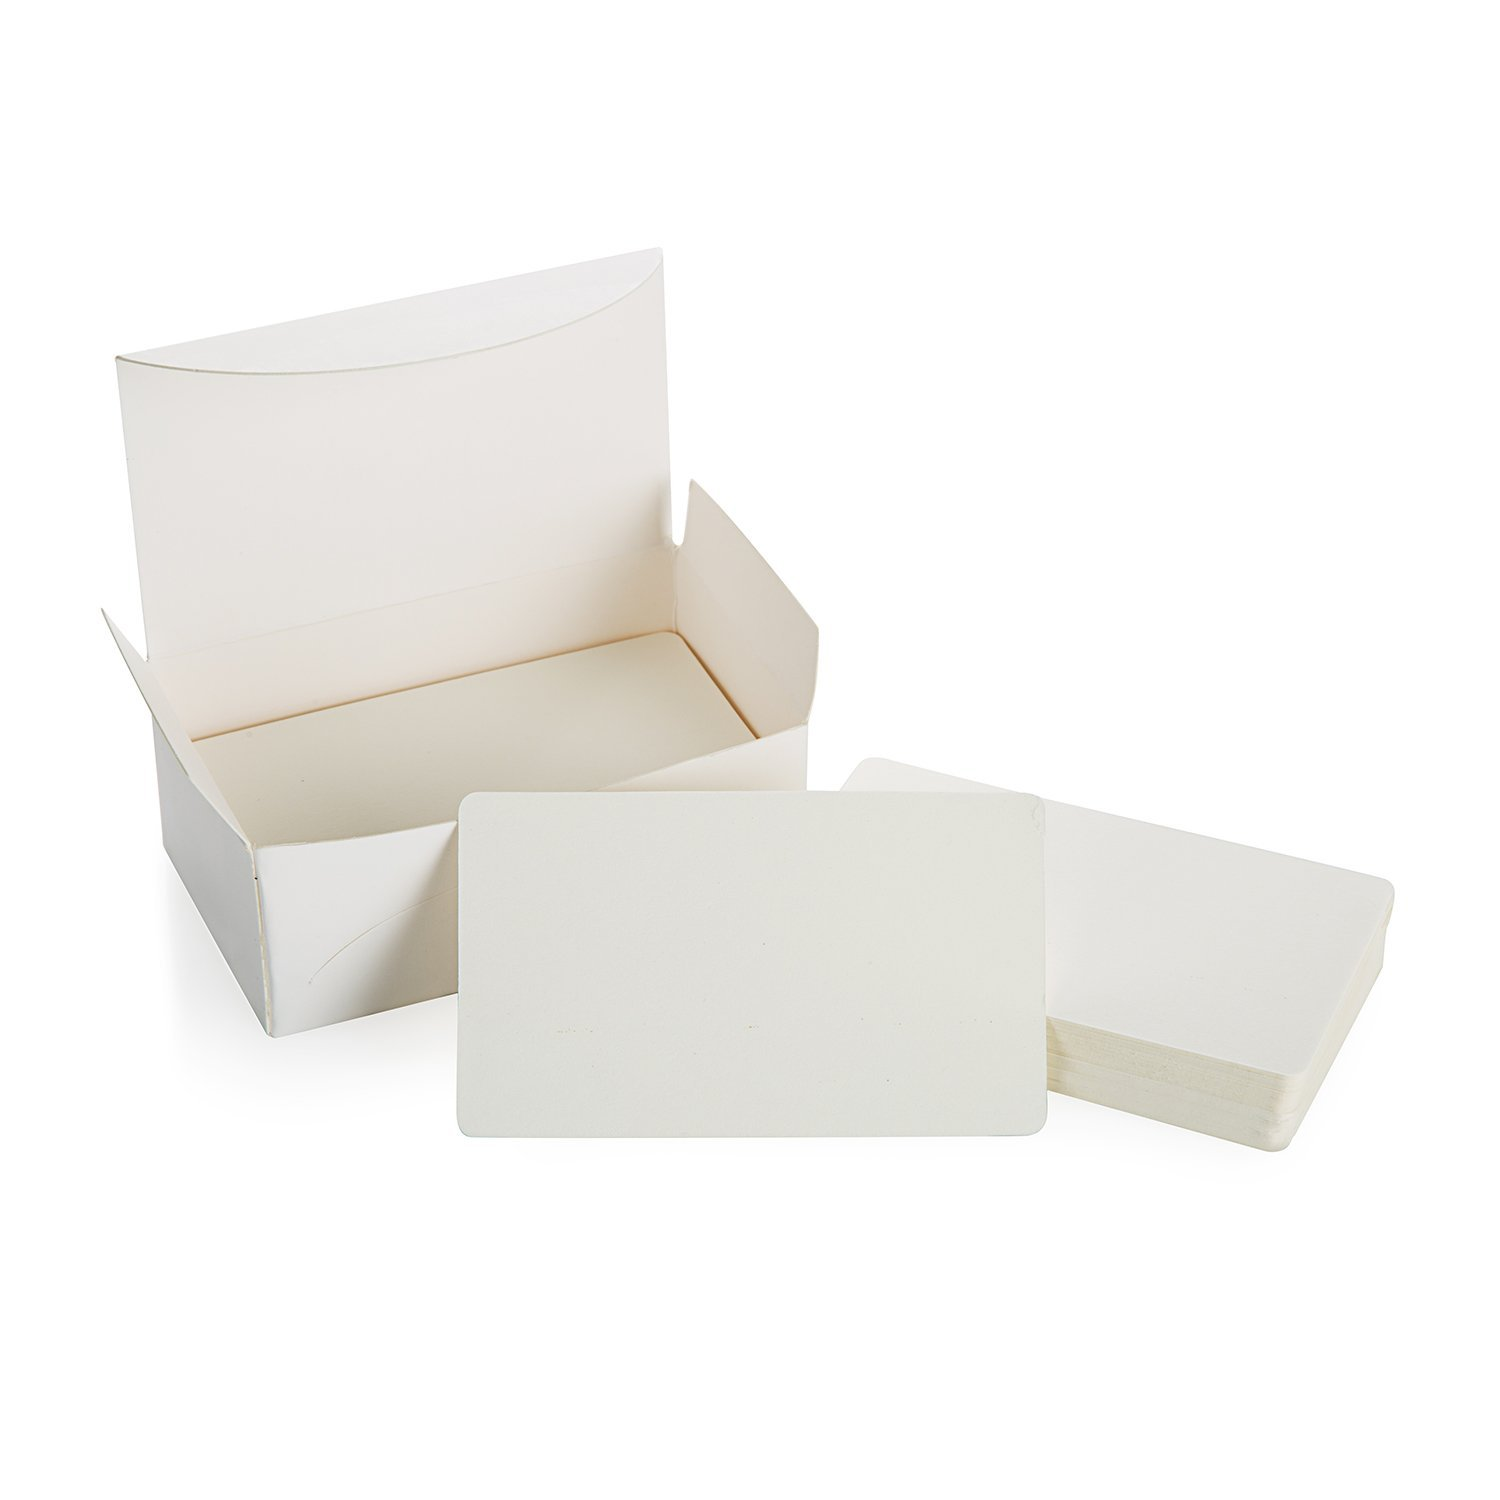 PPYY NEW -Blank White Cardboard paper Message Card Business Cards Word Card DIY Tag Gift Card About 100pcs (White) image